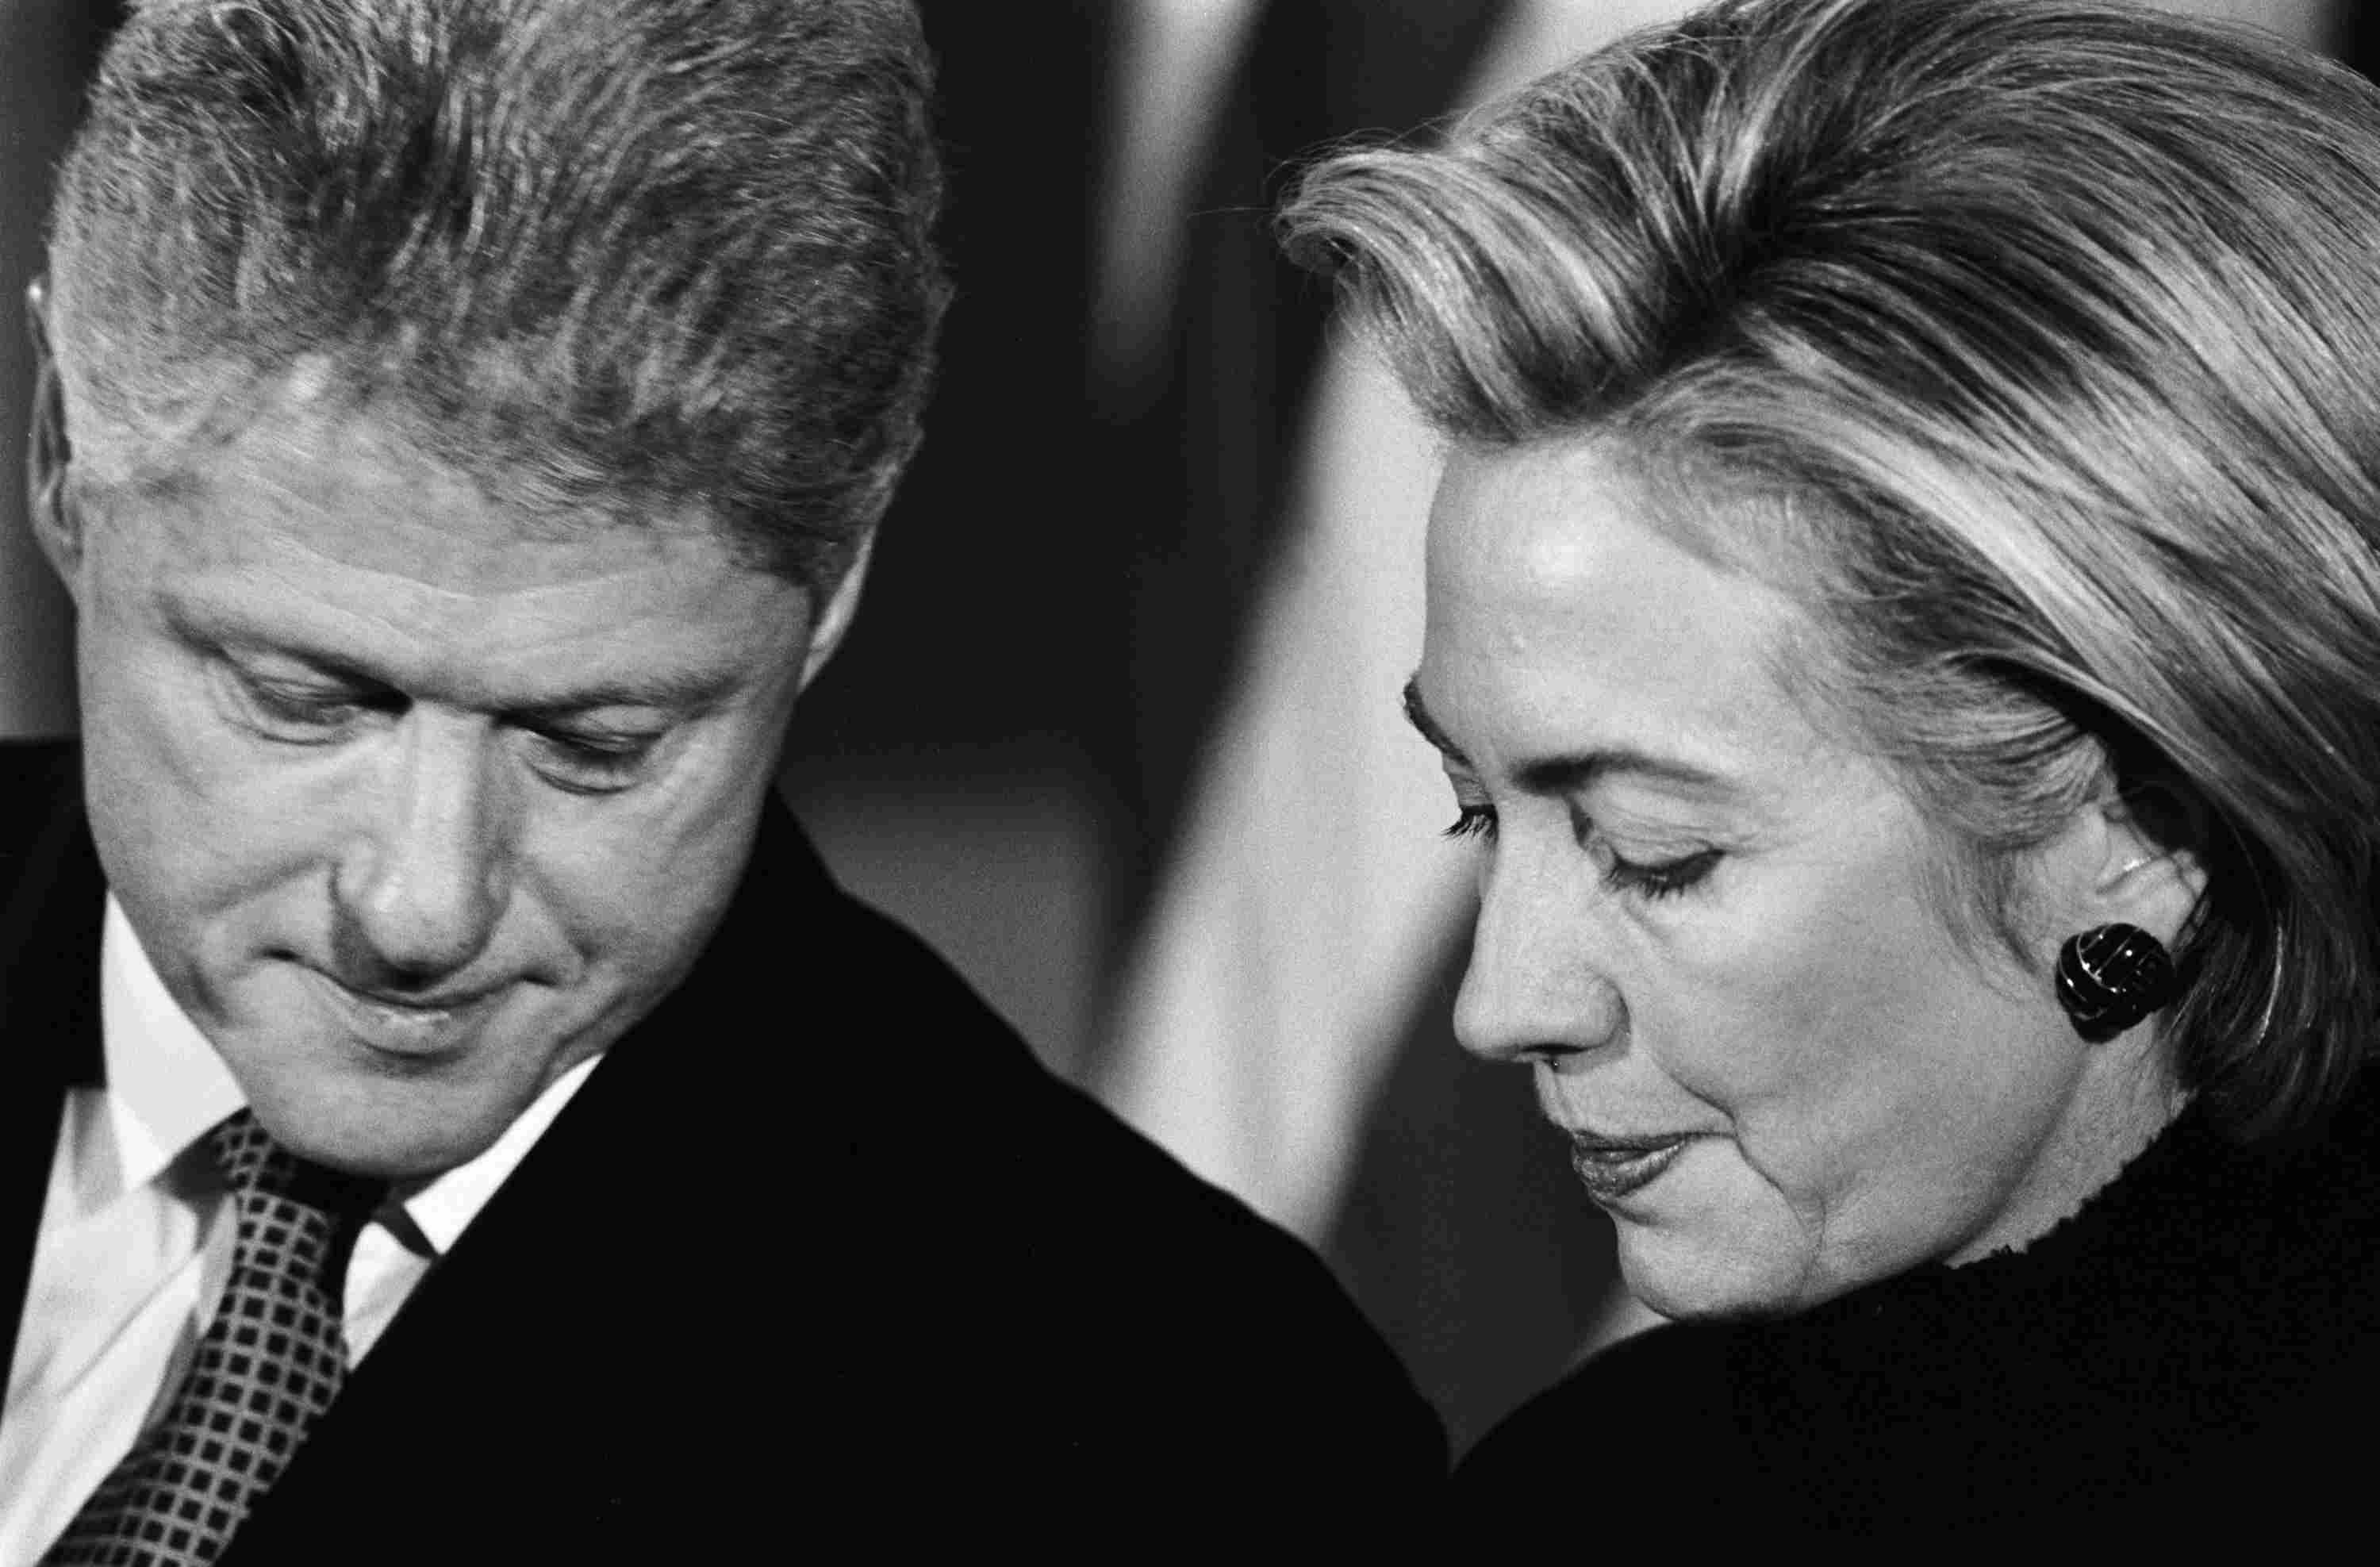 Bill and Hillary Clinton at the start of the Clinton Impeachment trial